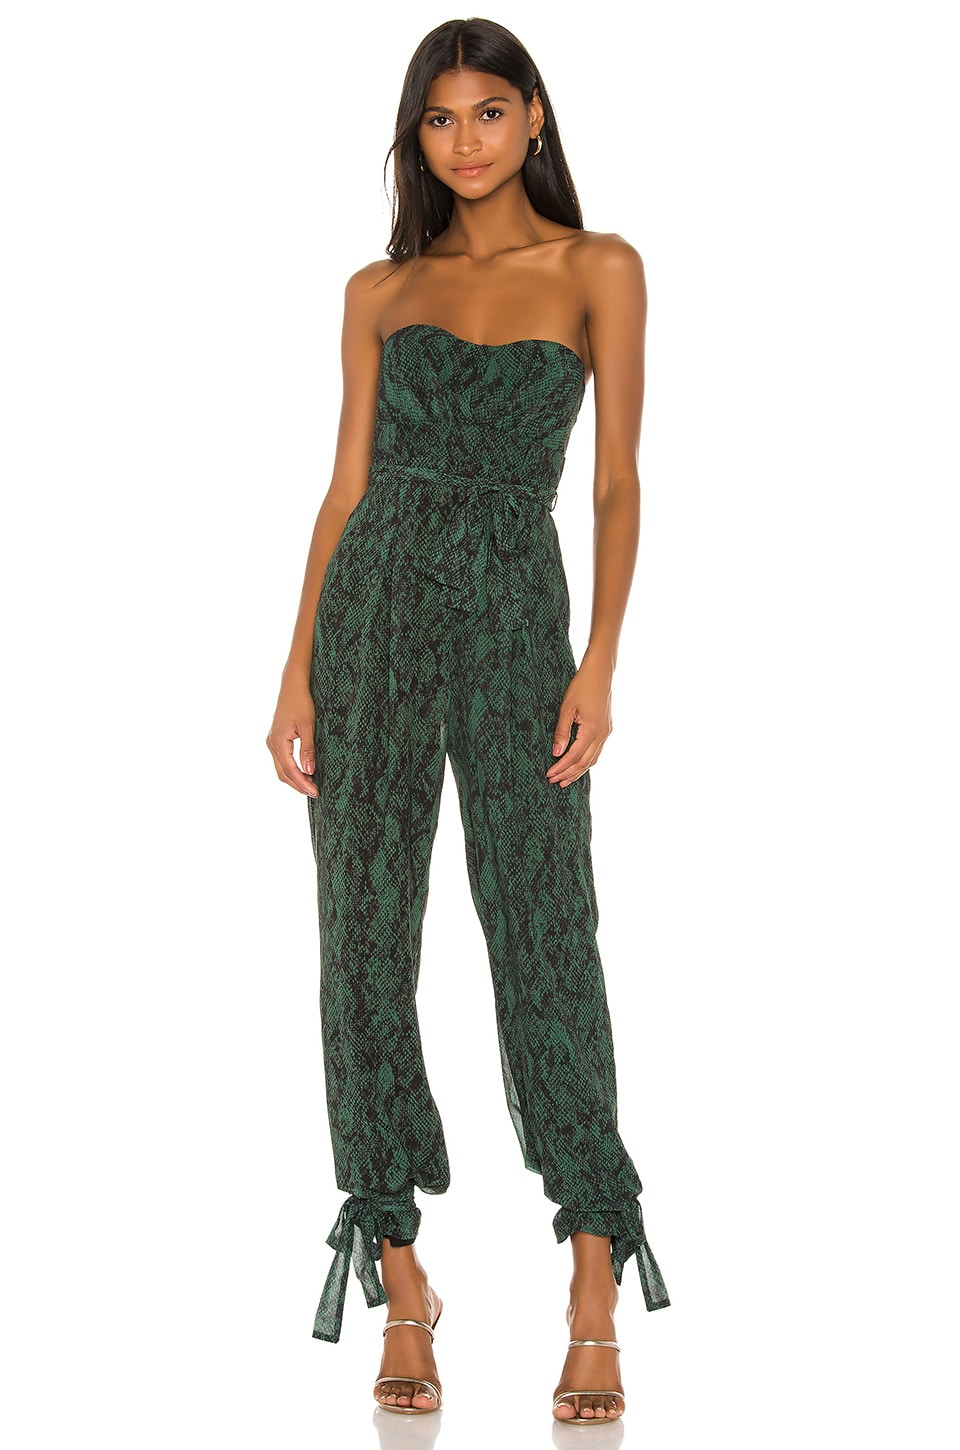 Michael Costello x REVOLVE Gwendolyn Jumpsuit in Green Snake